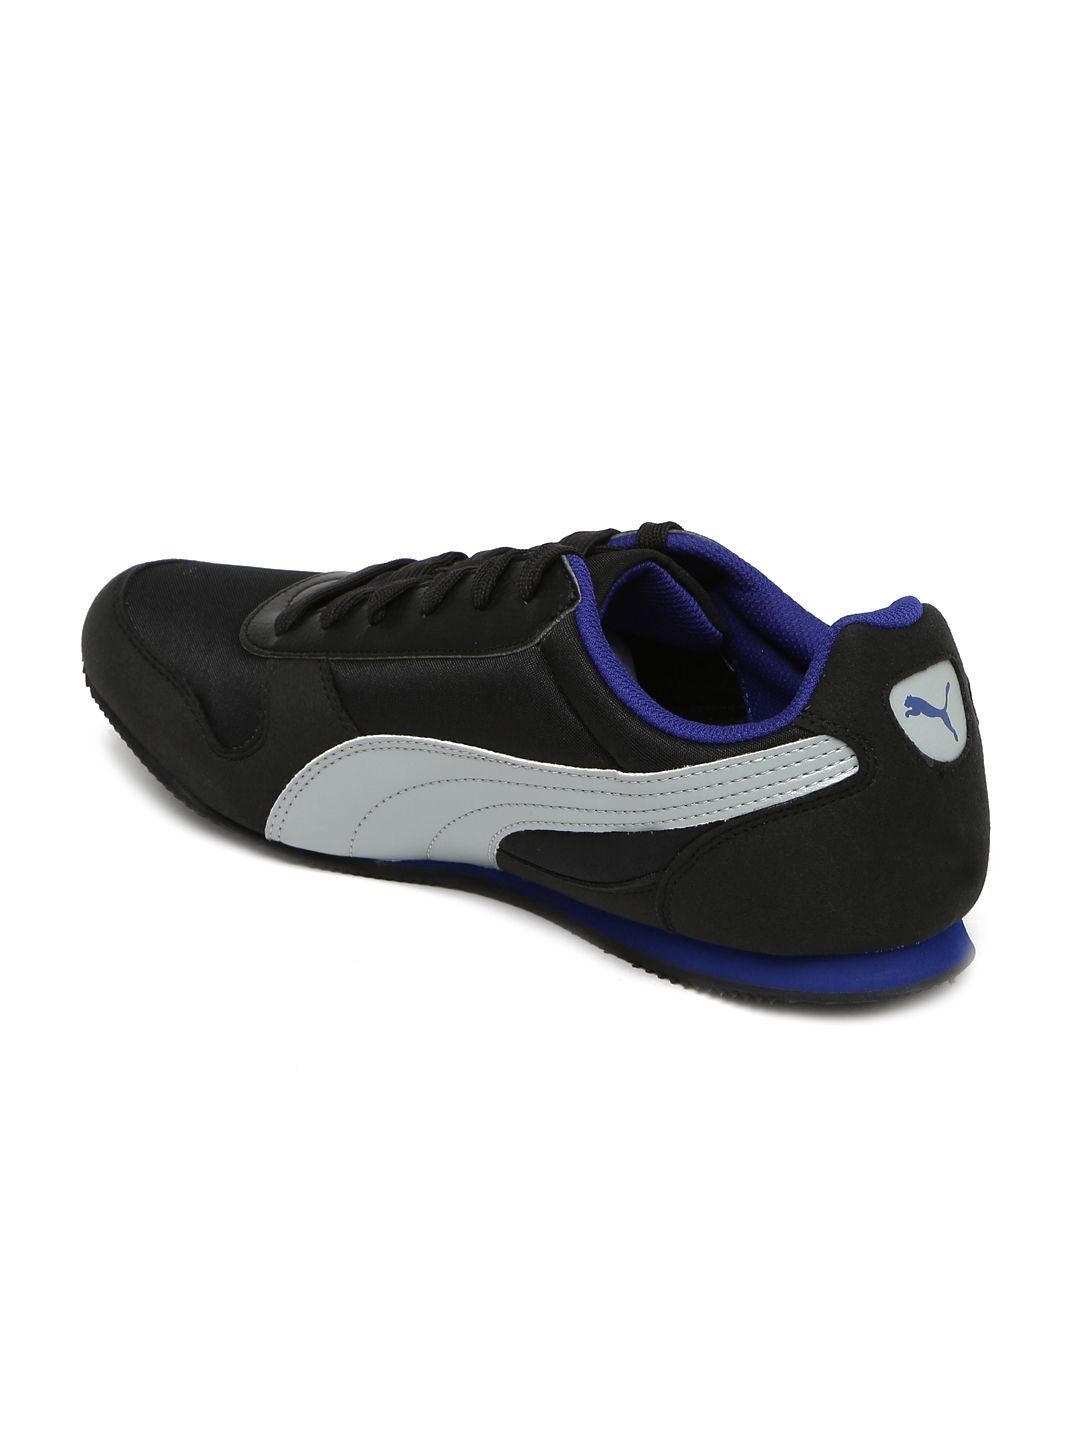 53cdaa1d9cd Buy Puma Men Black Superior IDP Sneakers - Casual Shoes for Men ...